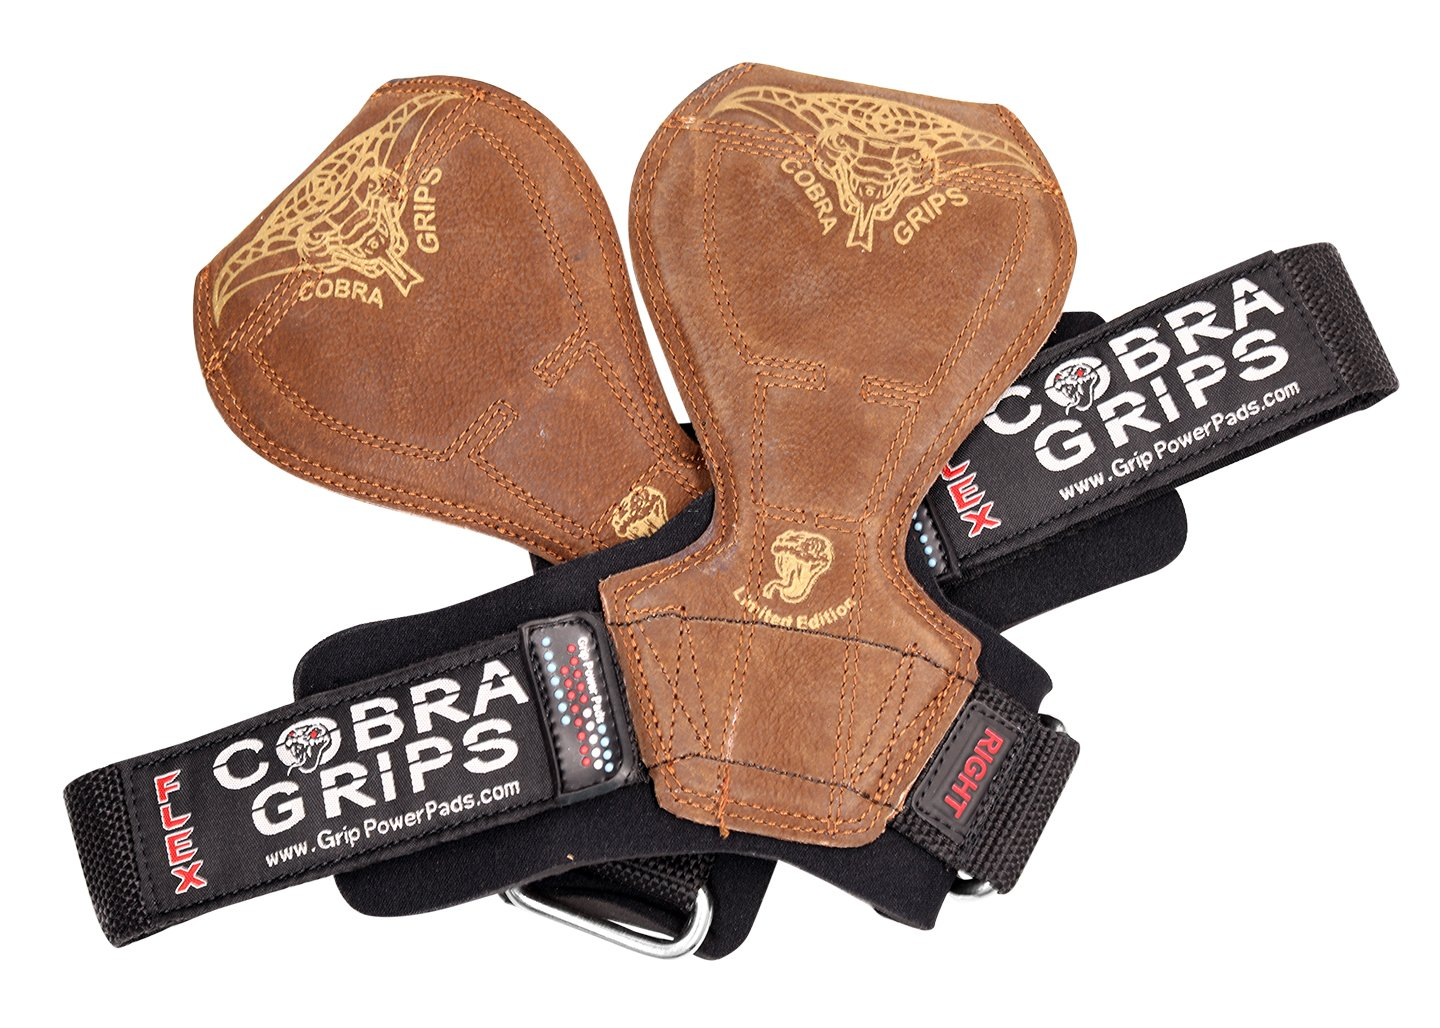 2018 Cobra Grips Flex Model Weight Lifting Gloves Heavy Duty Straps Alternative Power Lifting Hooks Best for Deadlifts with Padded Wrist Wrap Support Bodybuilding (Medium, Brown Leather) by Grip Power Pads (Image #7)